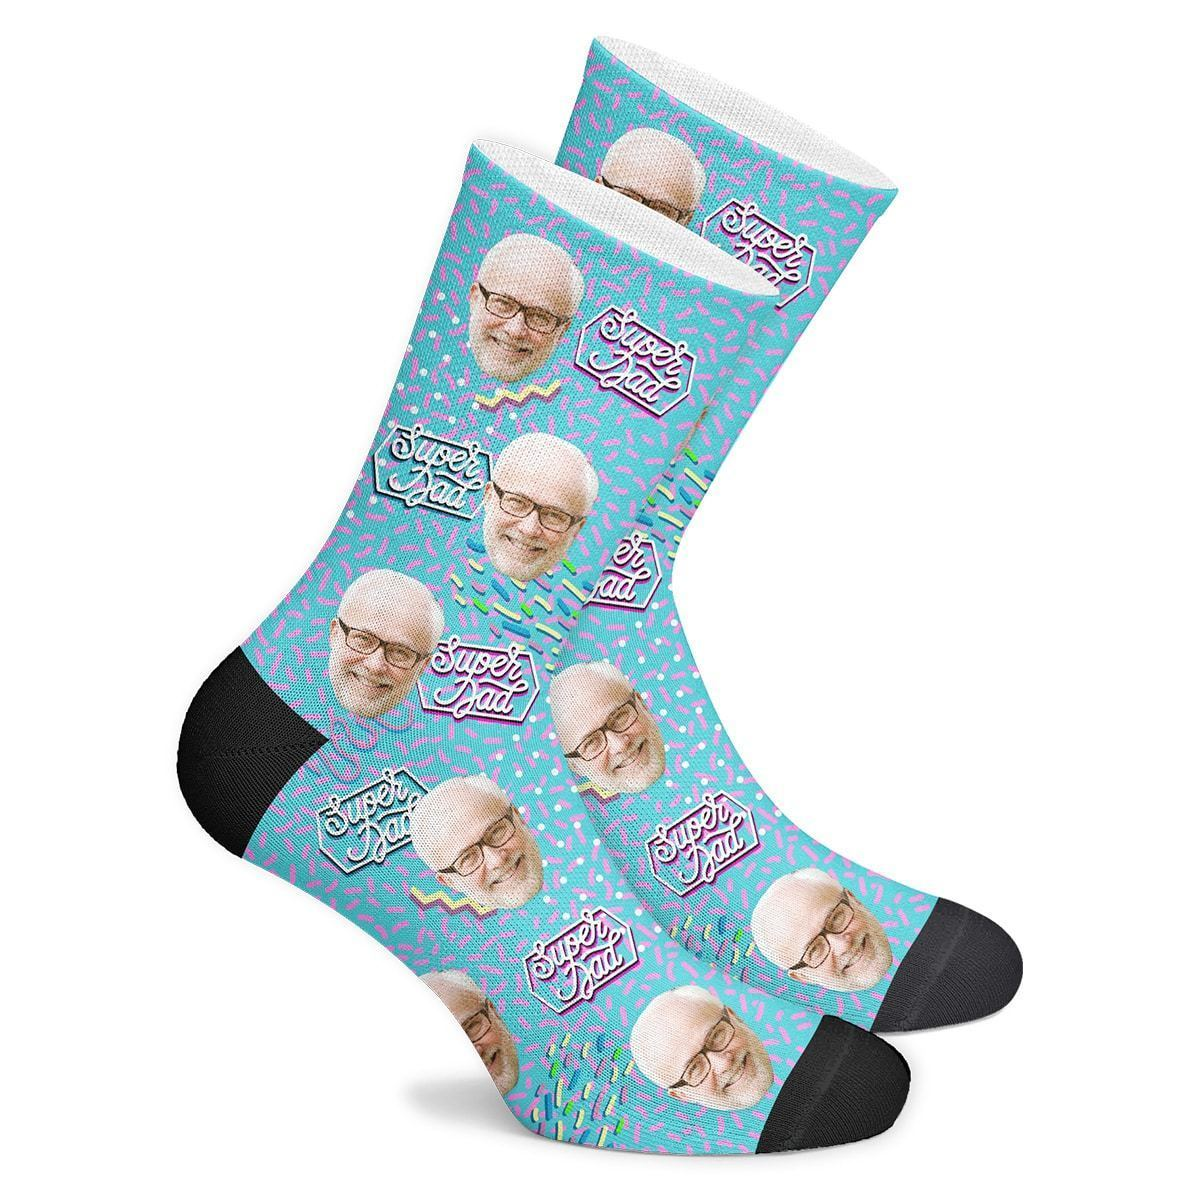 Super Dad Retro Custom Face Socks